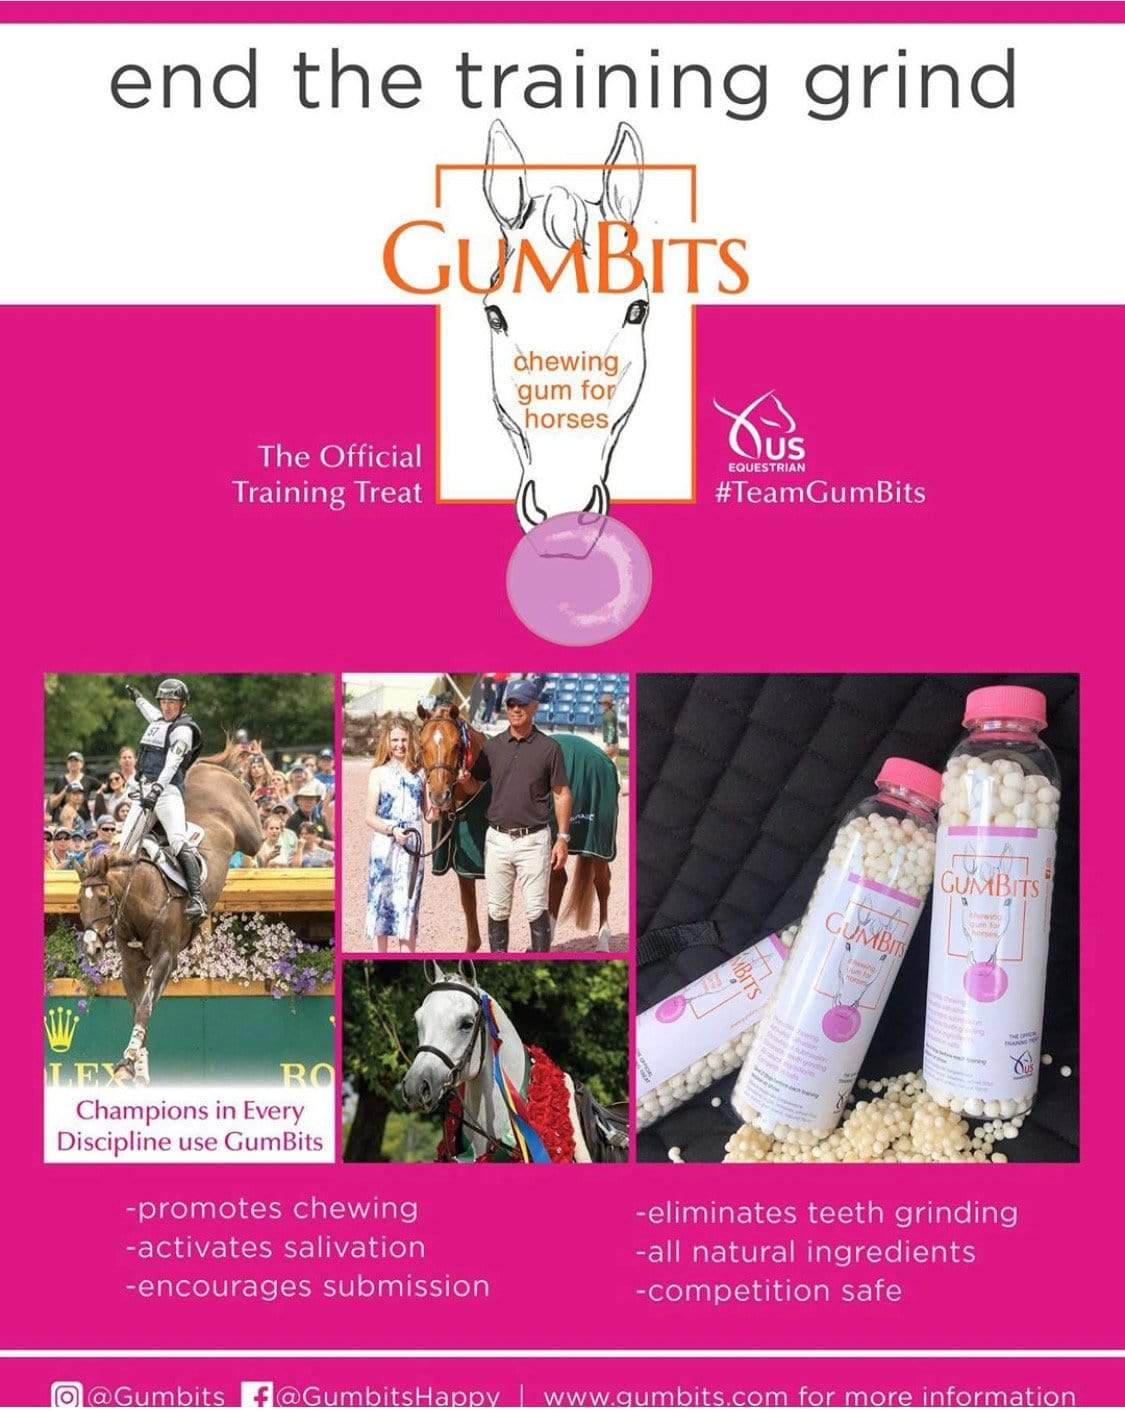 GumBits Treats GumBits - Training Treat equestrian team apparel online tack store mobile tack store custom farm apparel custom show stable clothing equestrian lifestyle horse show clothing riding clothes horses equestrian tack store